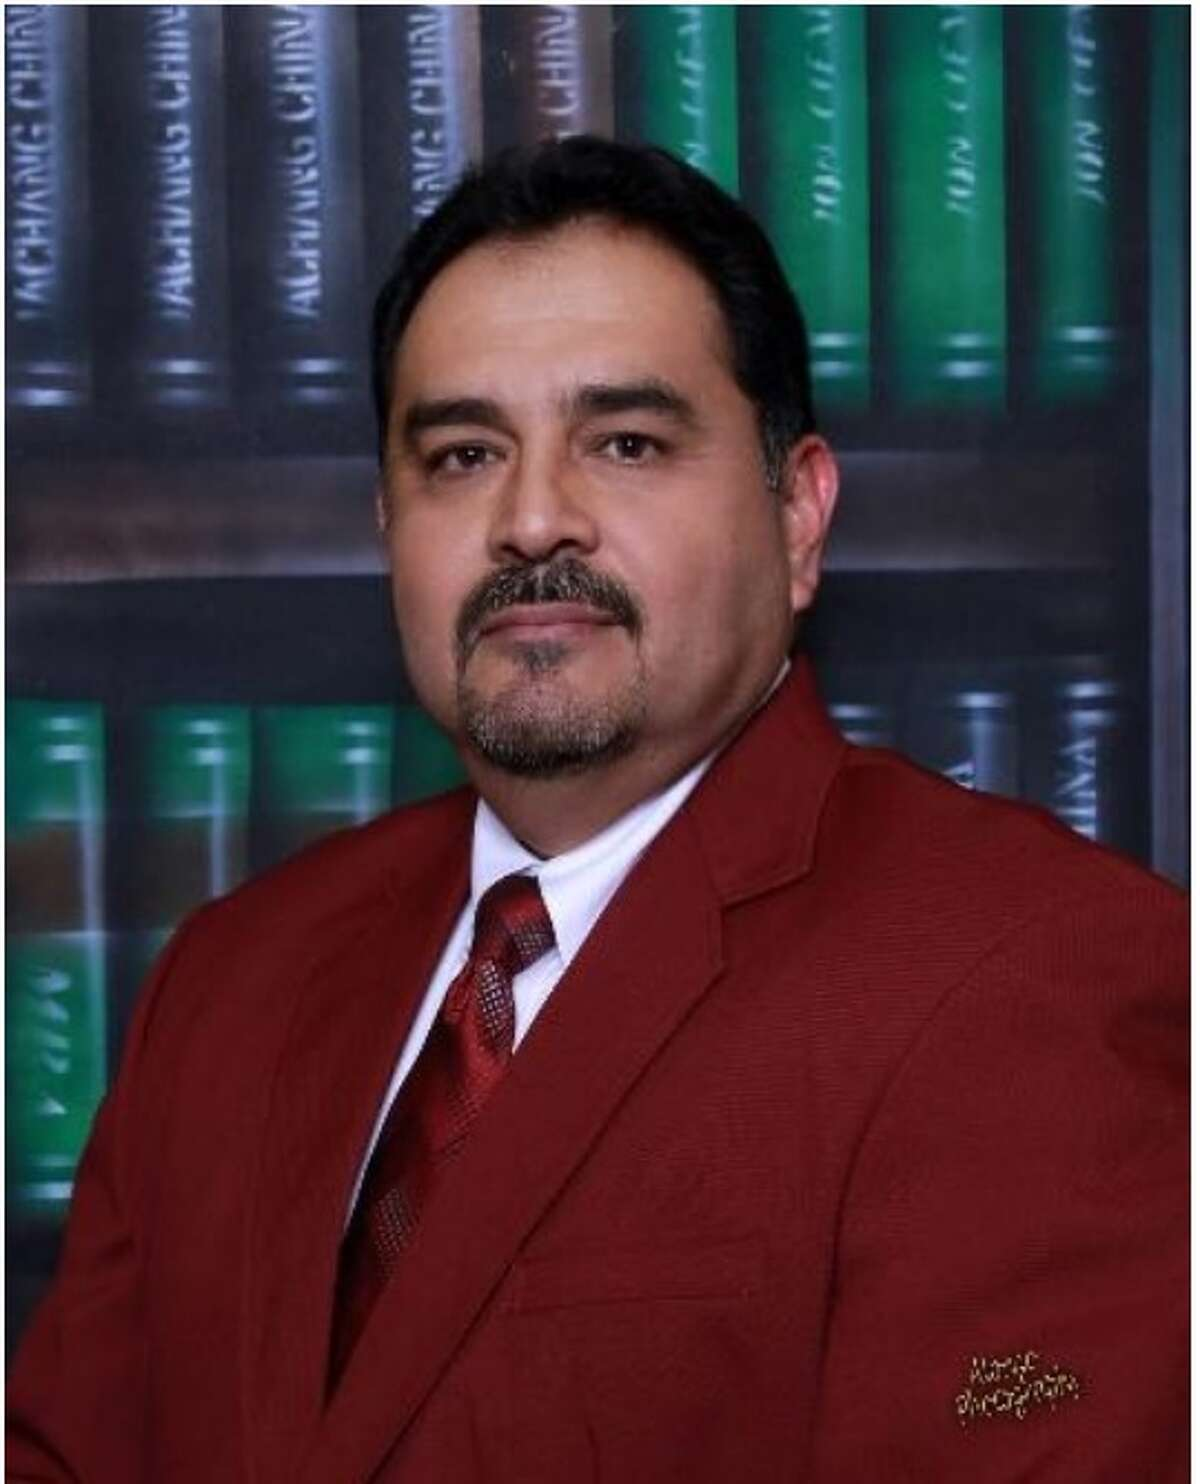 Eloy Infante, a board member at Donna ISD, was charged with federal bribery charges in November 2015.